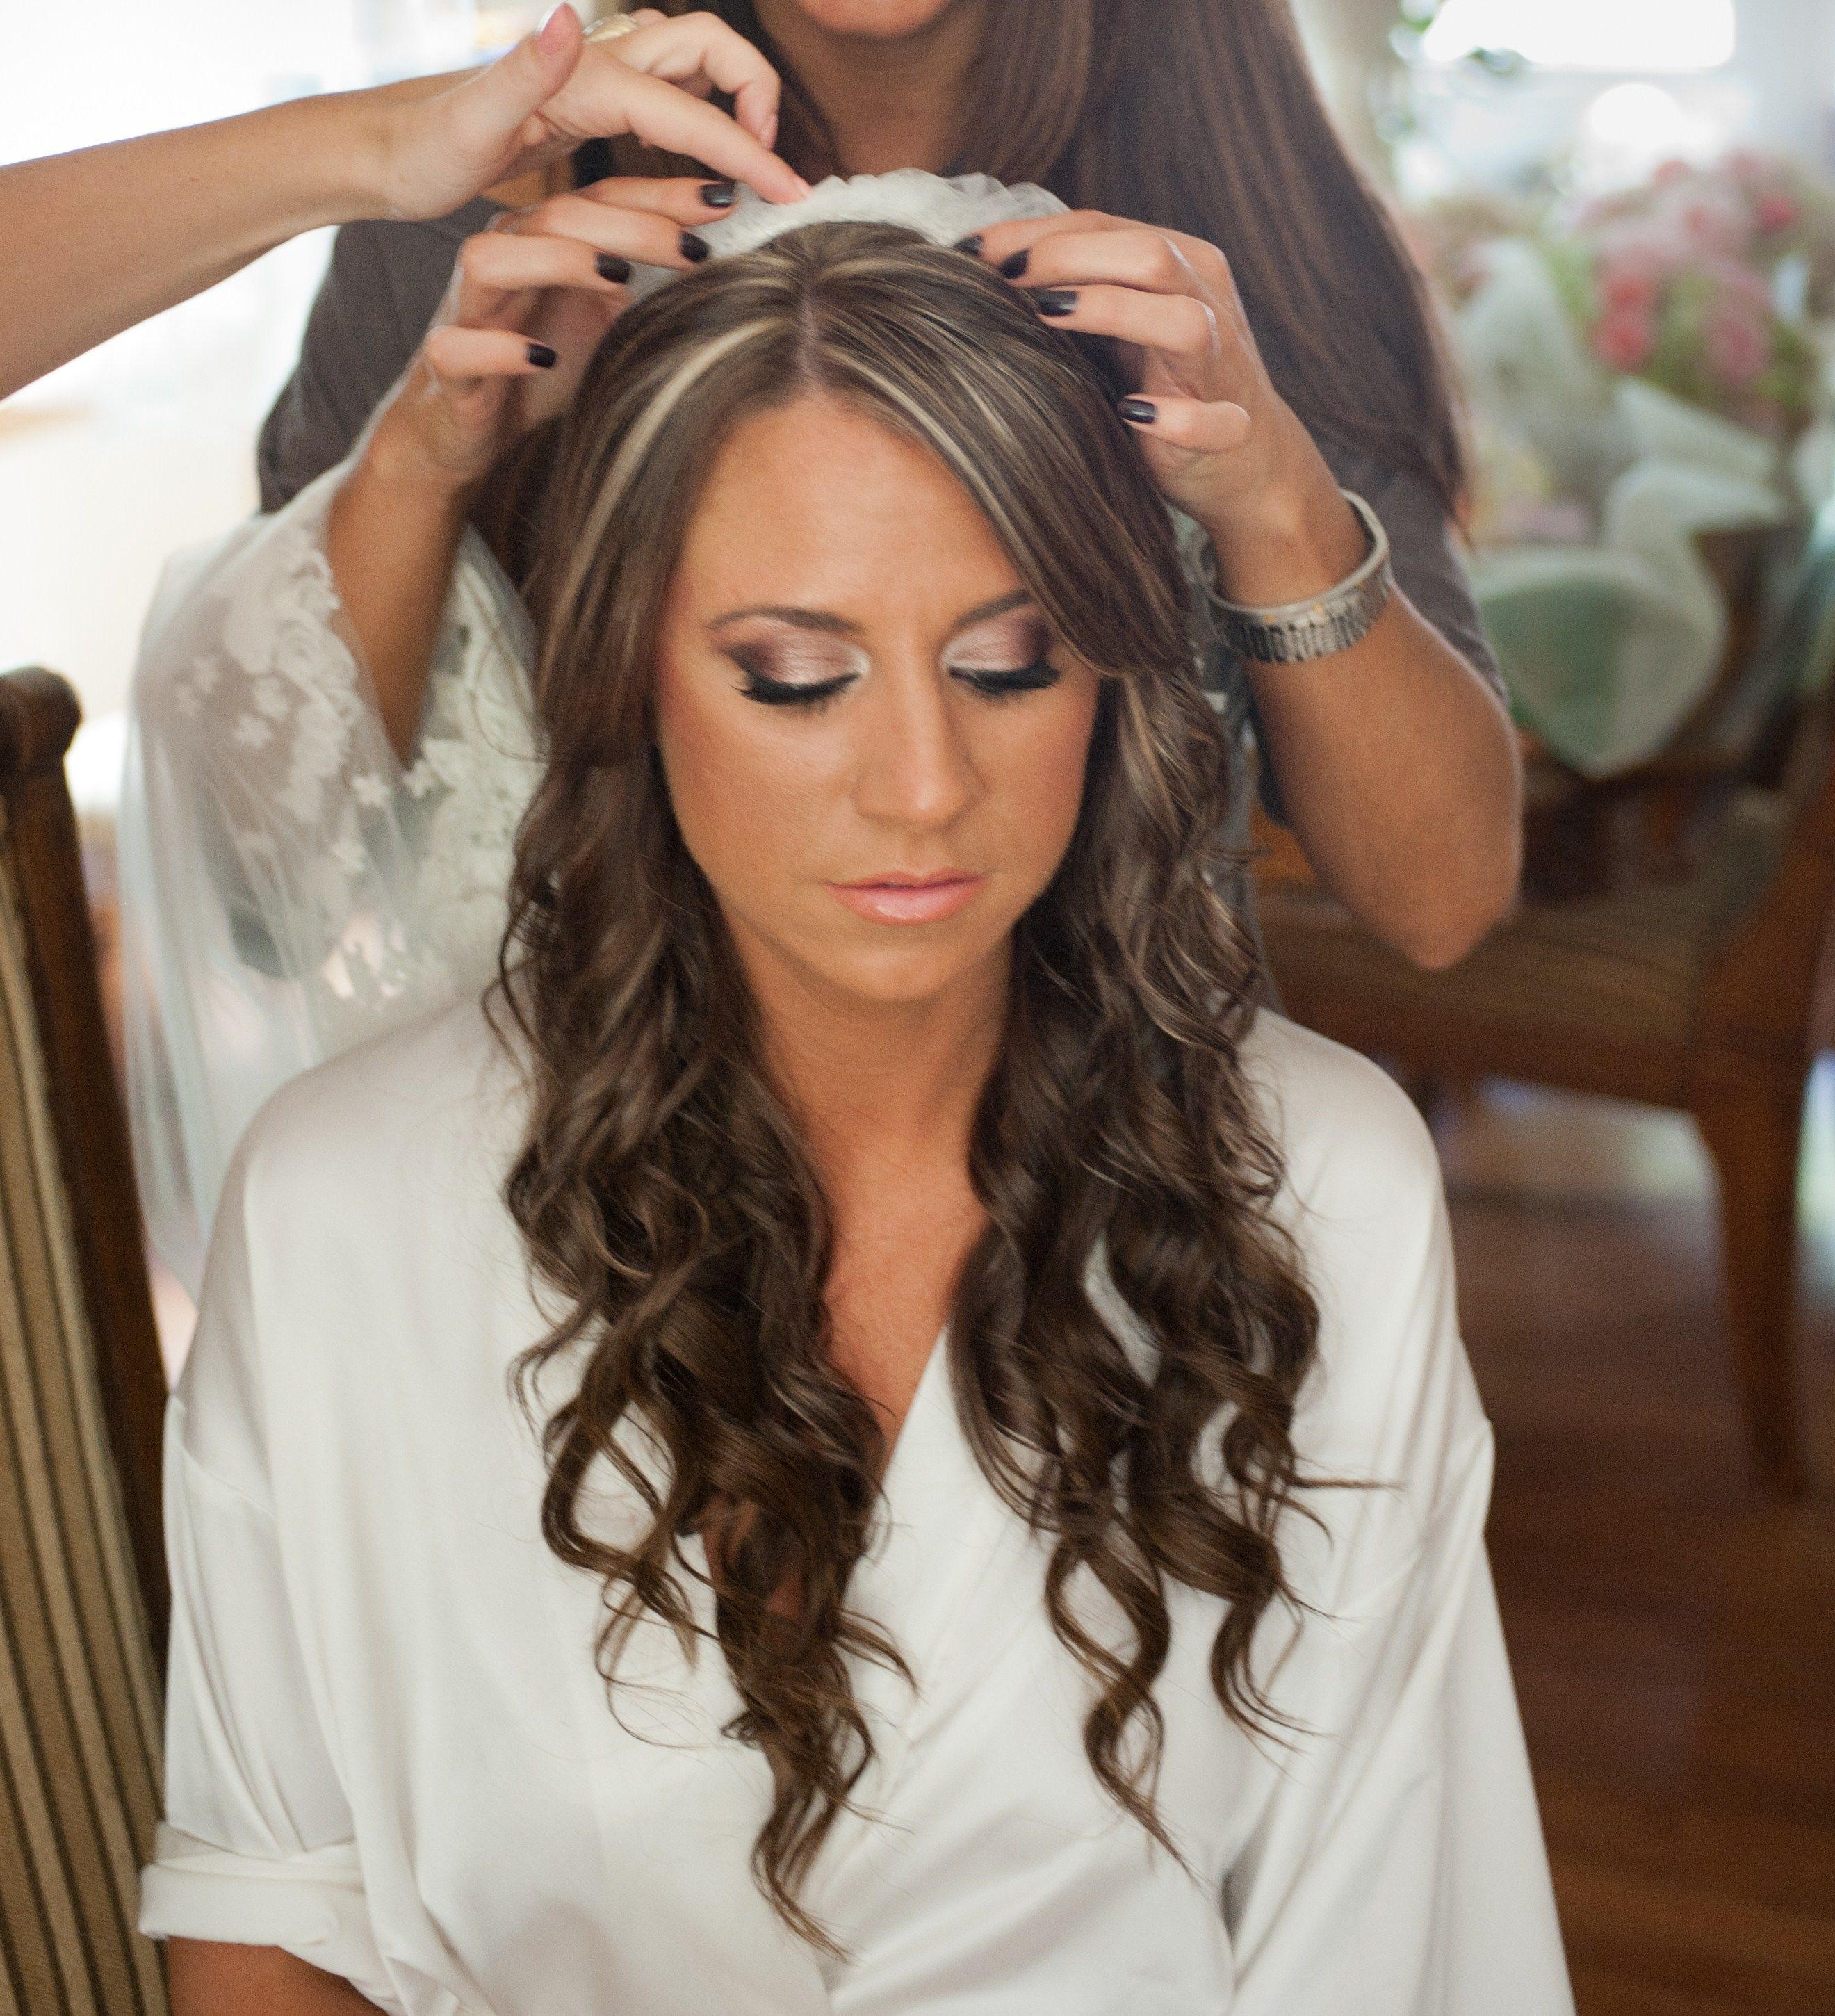 Hair & Makeup by Crissy at Salon Couture Watertown CT | Our wedding ...